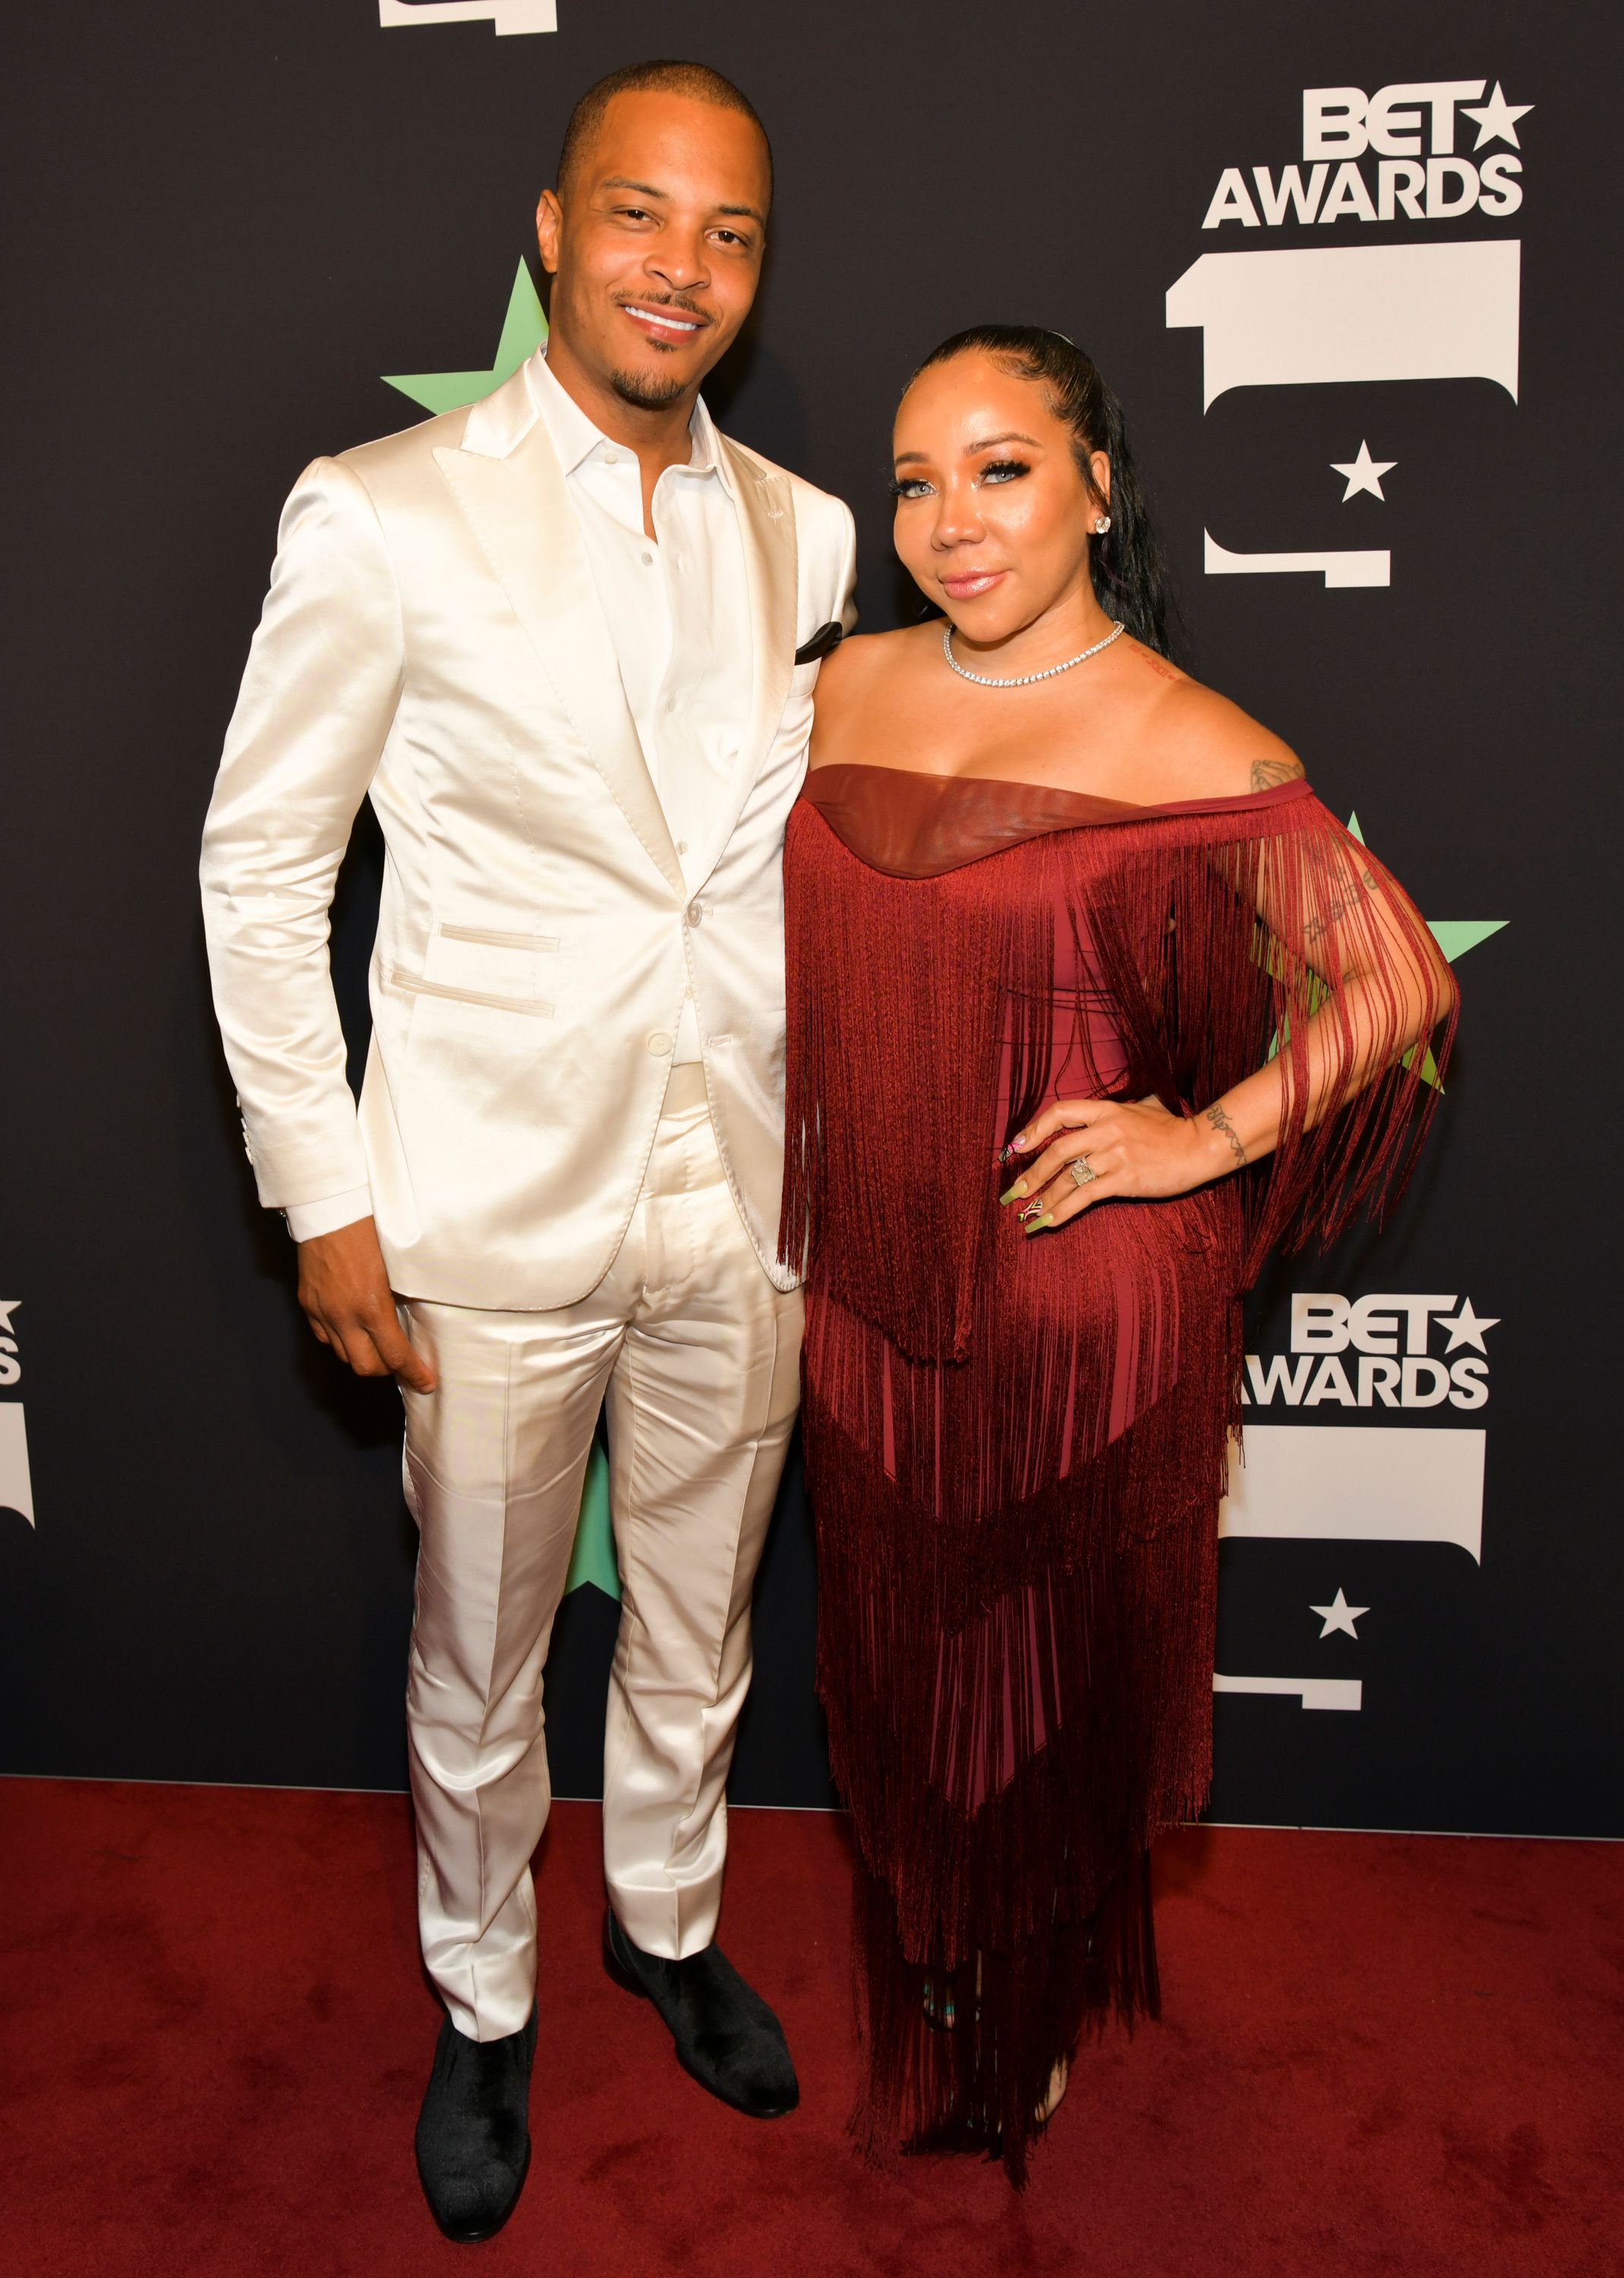 T.I. and Tiny Harris at the 2019 BET Awards on June 23, 2019 in Los Angeles, California. | Photo: Getty Images